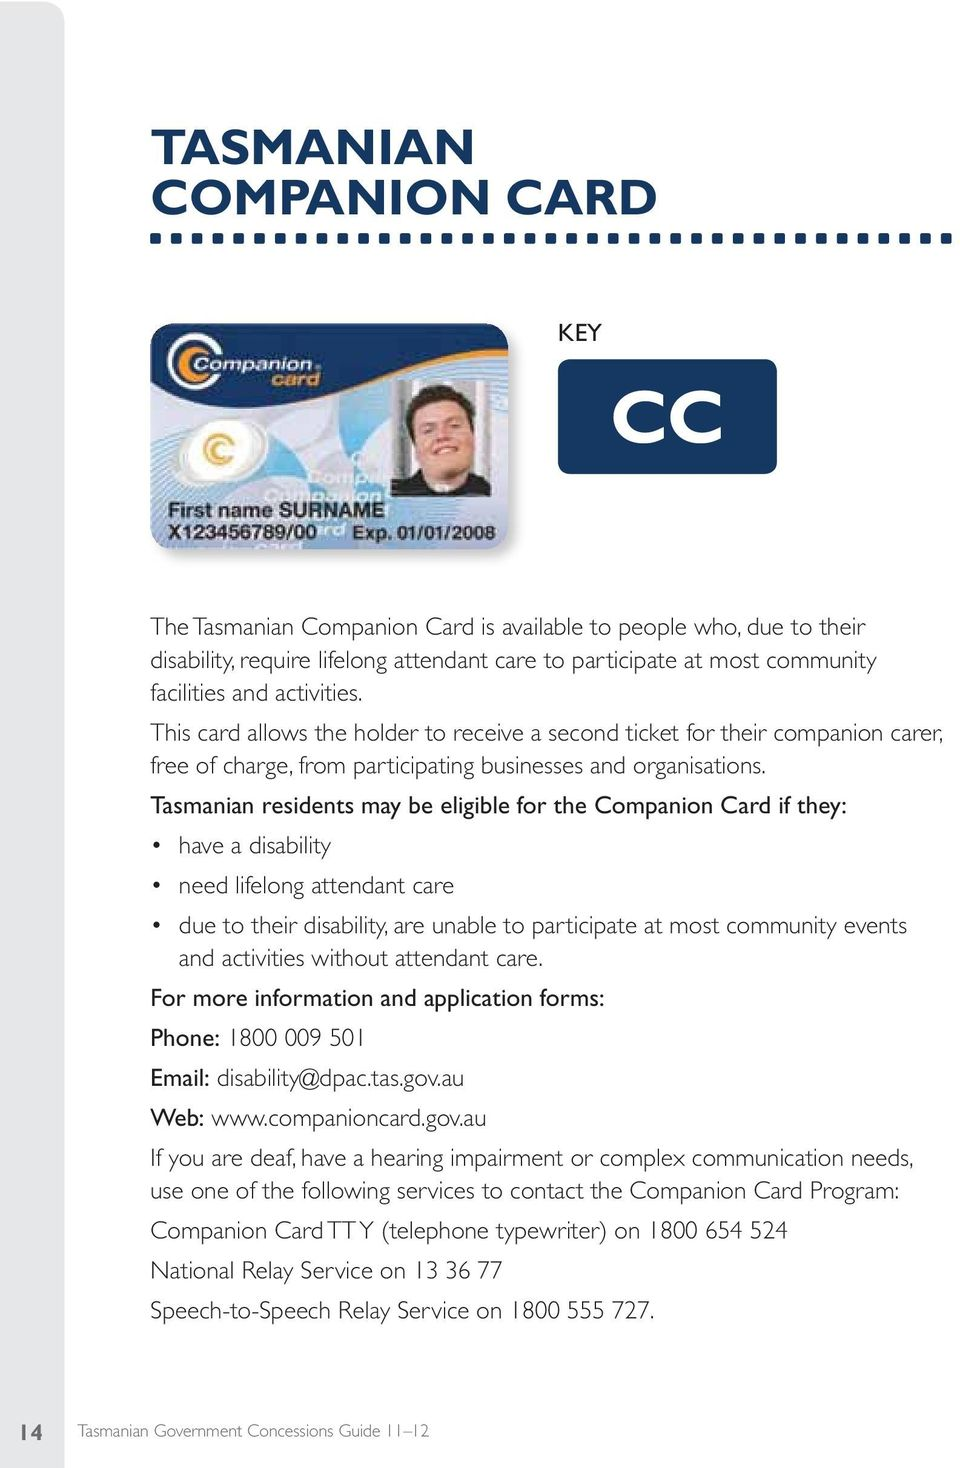 Tasmanian residents may be eligible for the Companion Card if they: have a disability need lifelong attendant care due to their disability, are unable to participate at most community events and